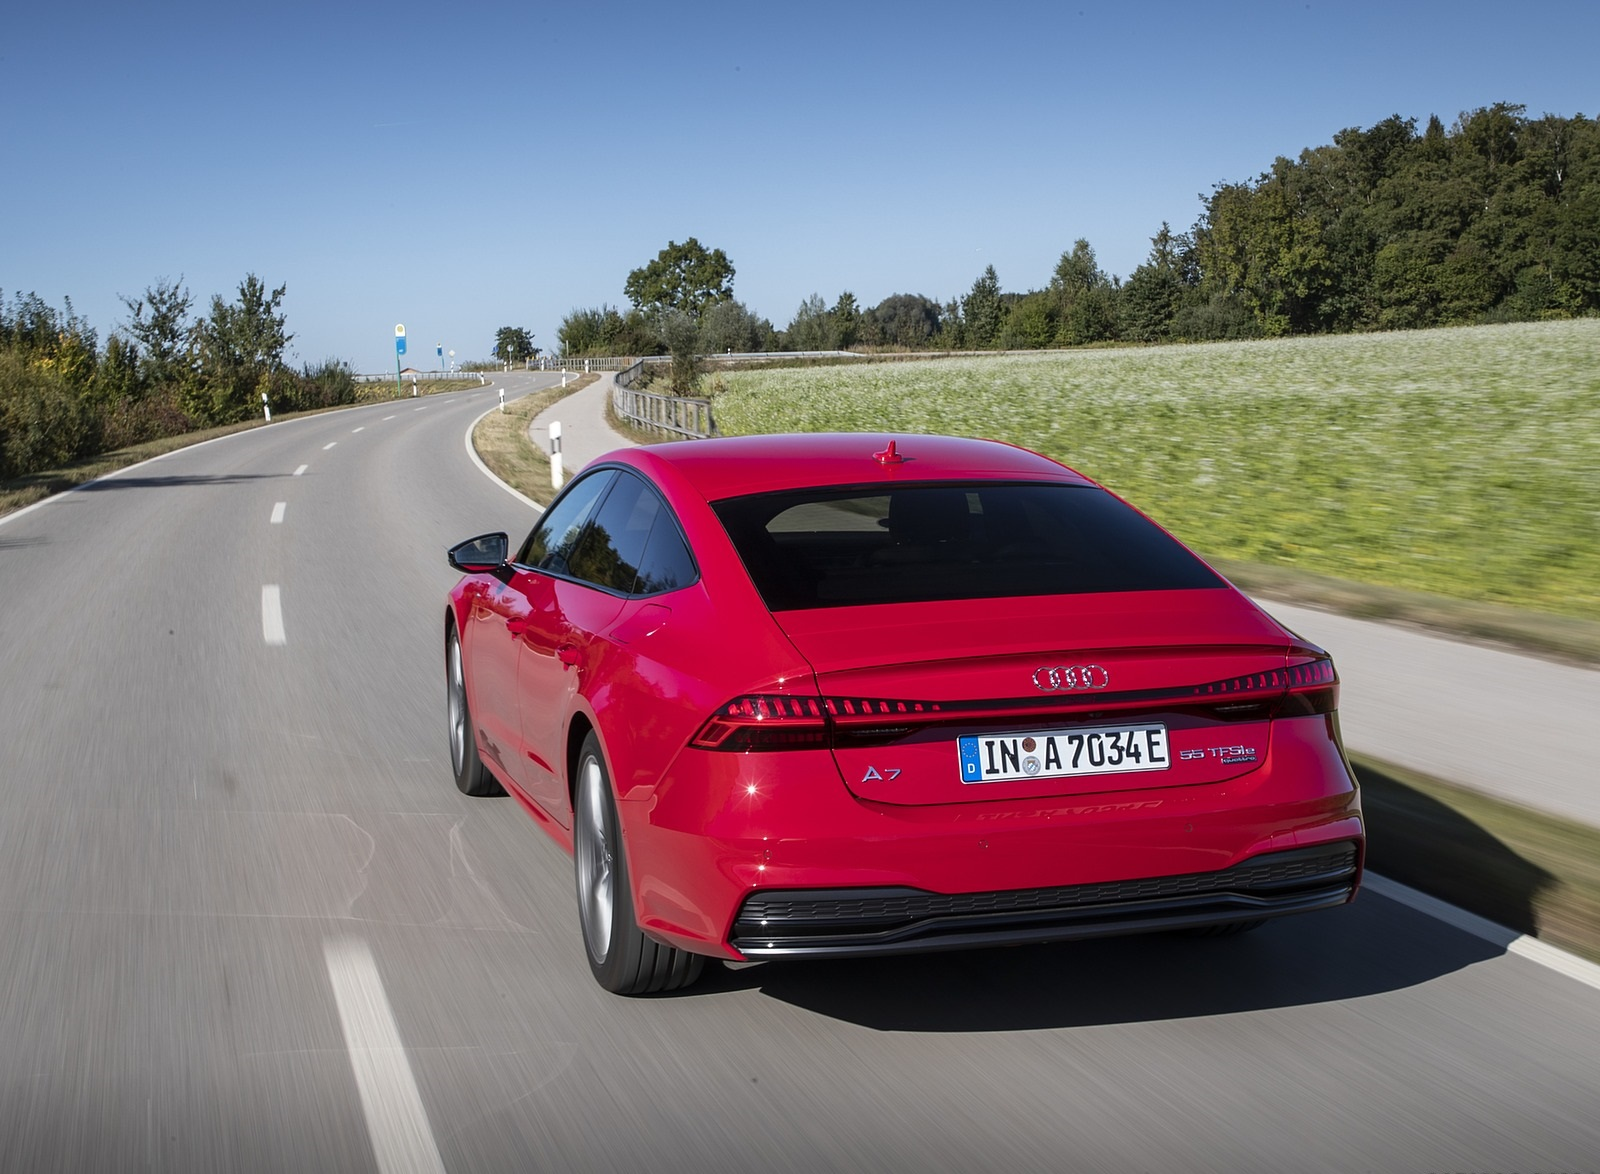 2020 Audi A7 Sportback 55 TFSI e quattro Plug-In Hybrid (Color: Tango Red) Rear Wallpapers (8)